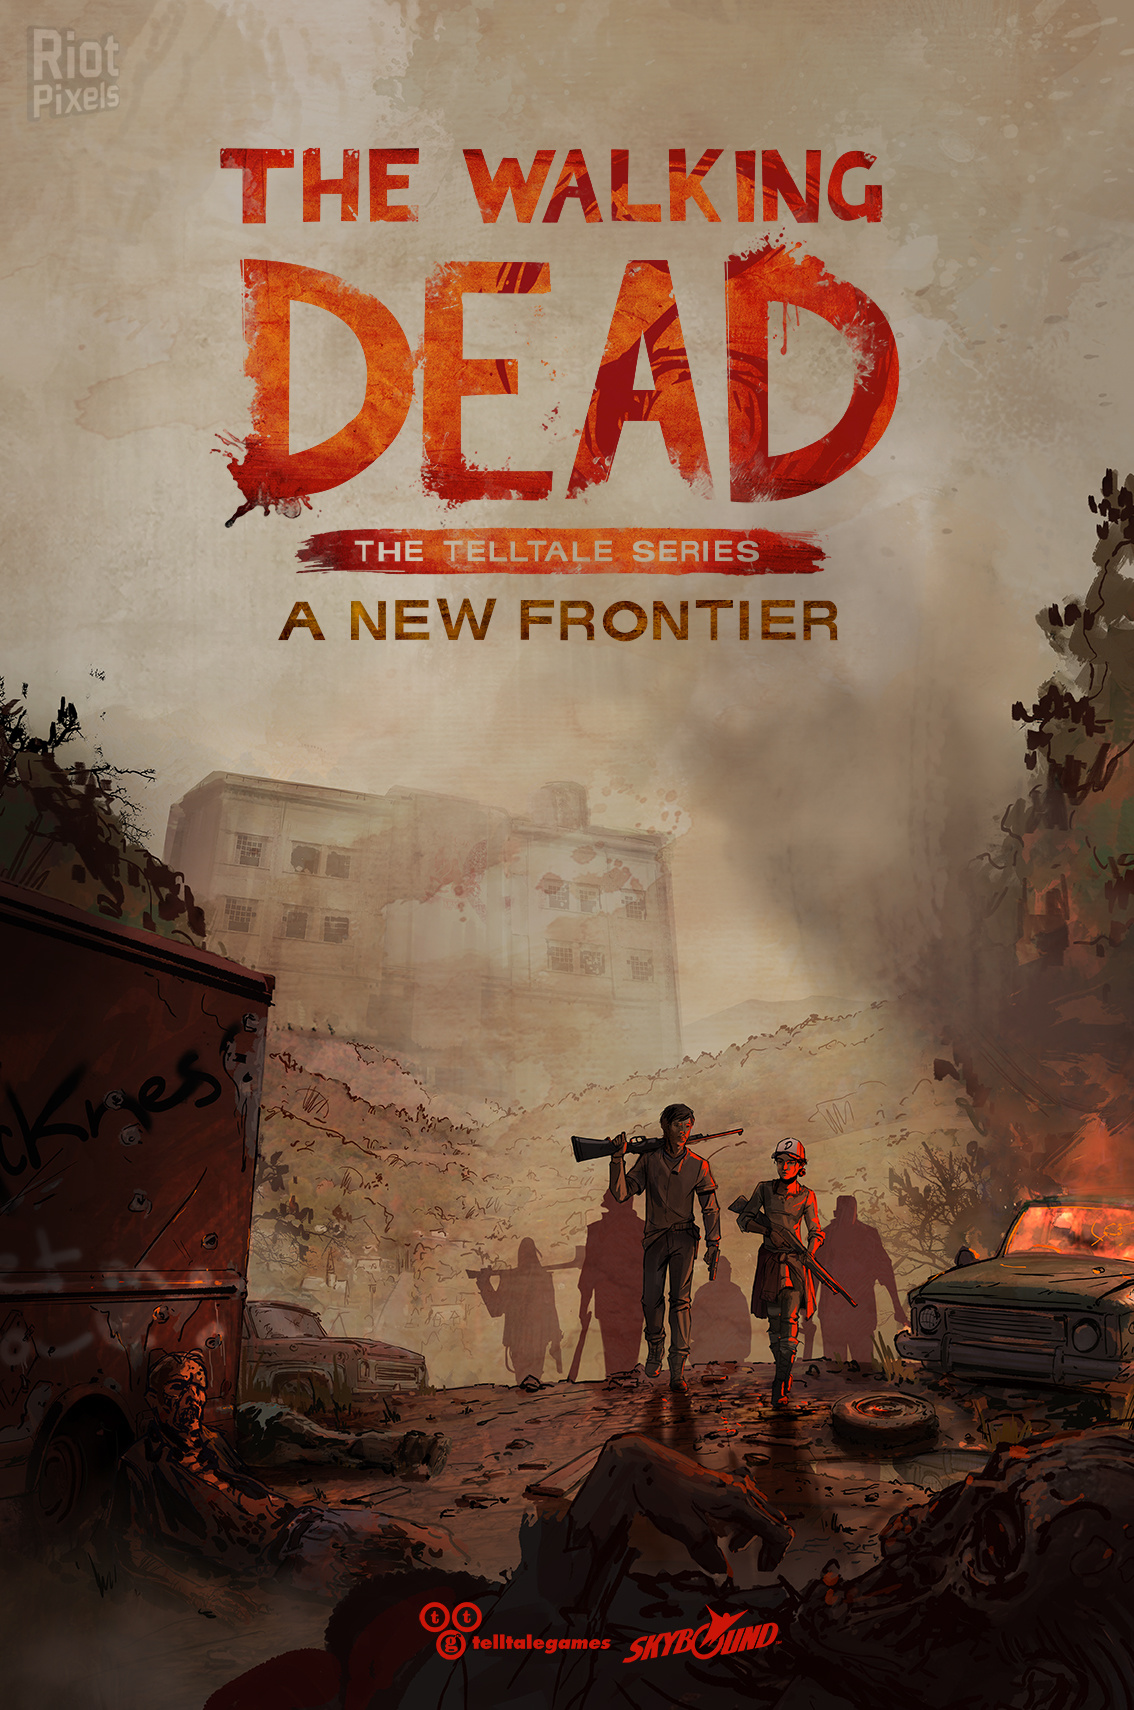 Download The Walking Dead A New Frontier Episode 1 2